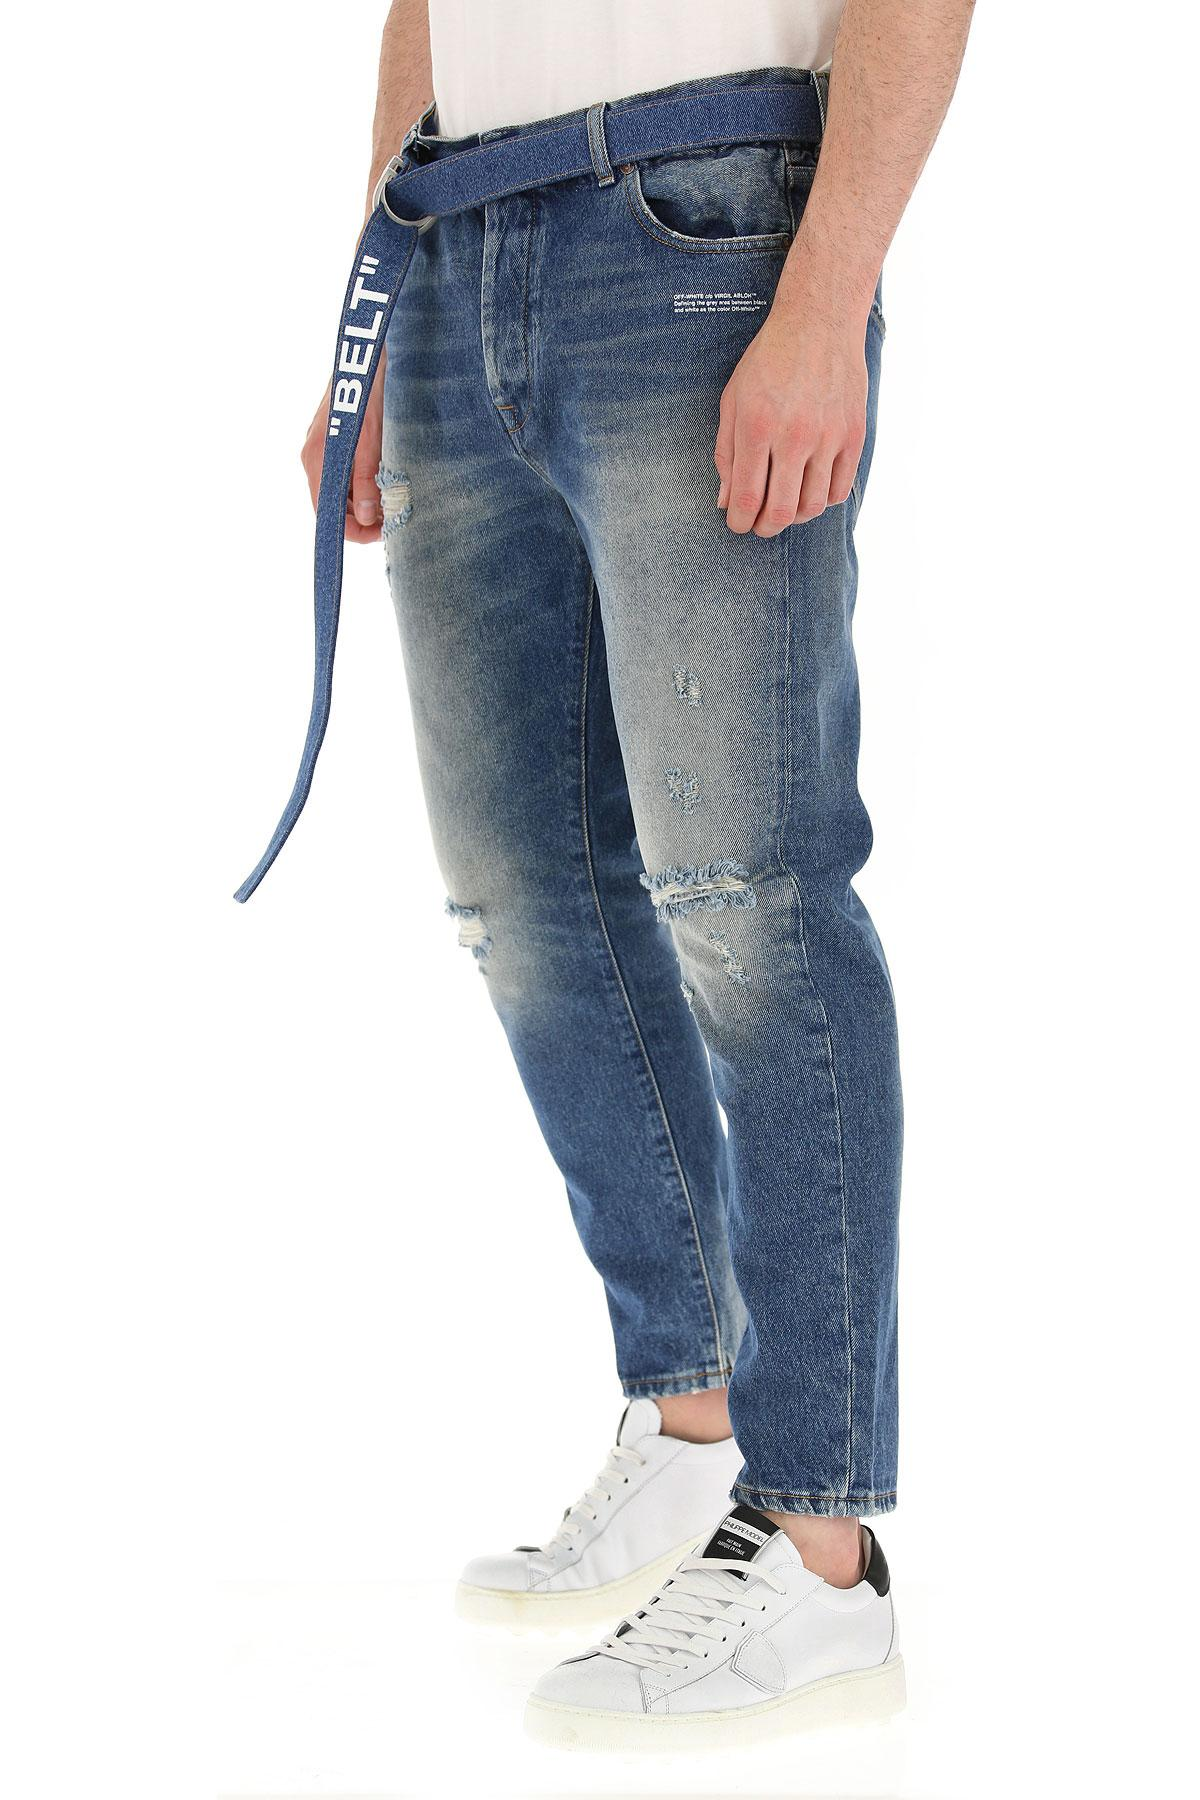 Off-White c/o Virgil Abloh Denim Jeans in Blau für Herren 5xyGY